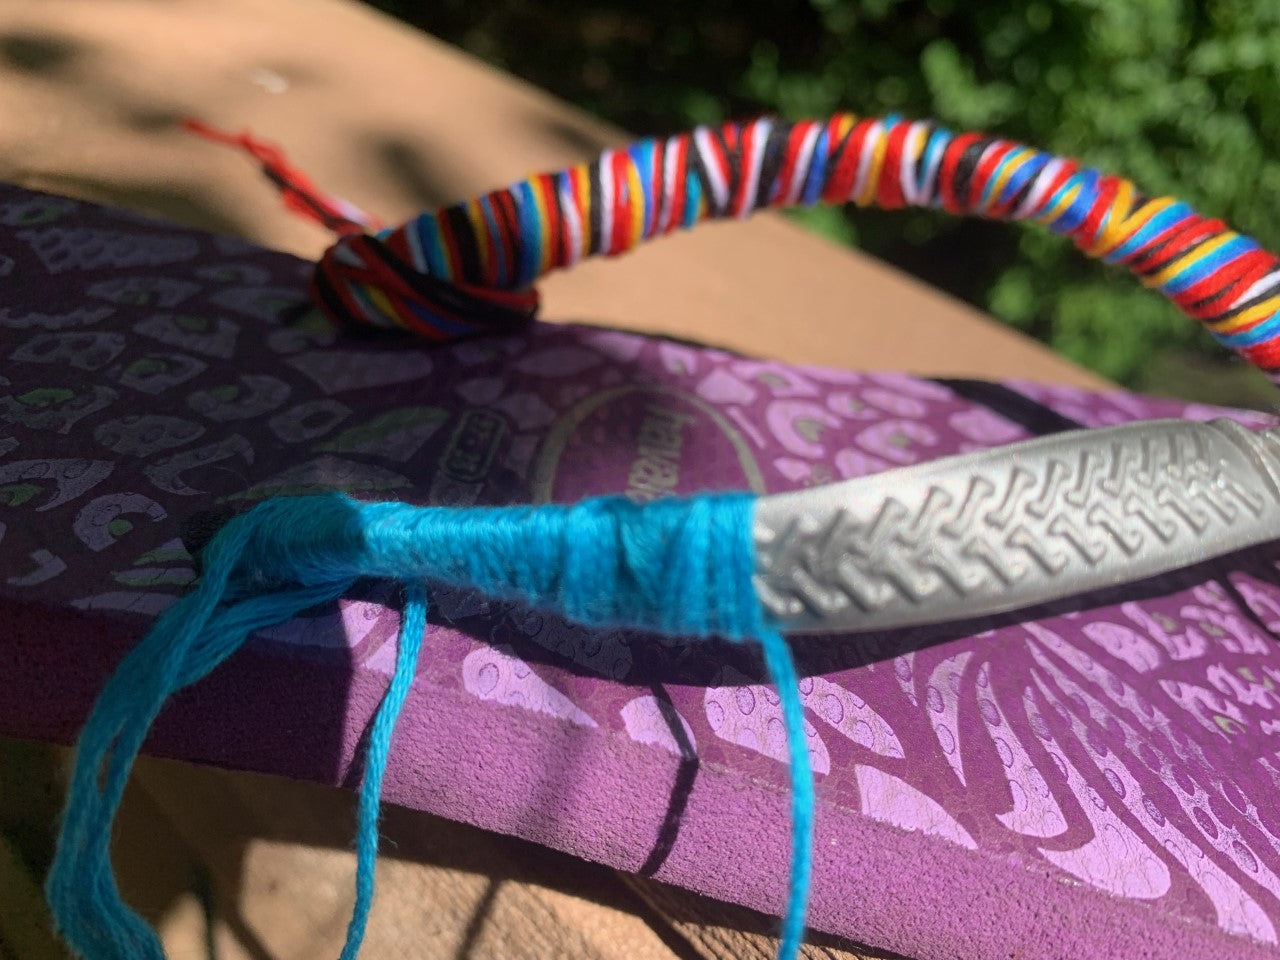 Monday: Create Your Own Embroidered Flip Flops!